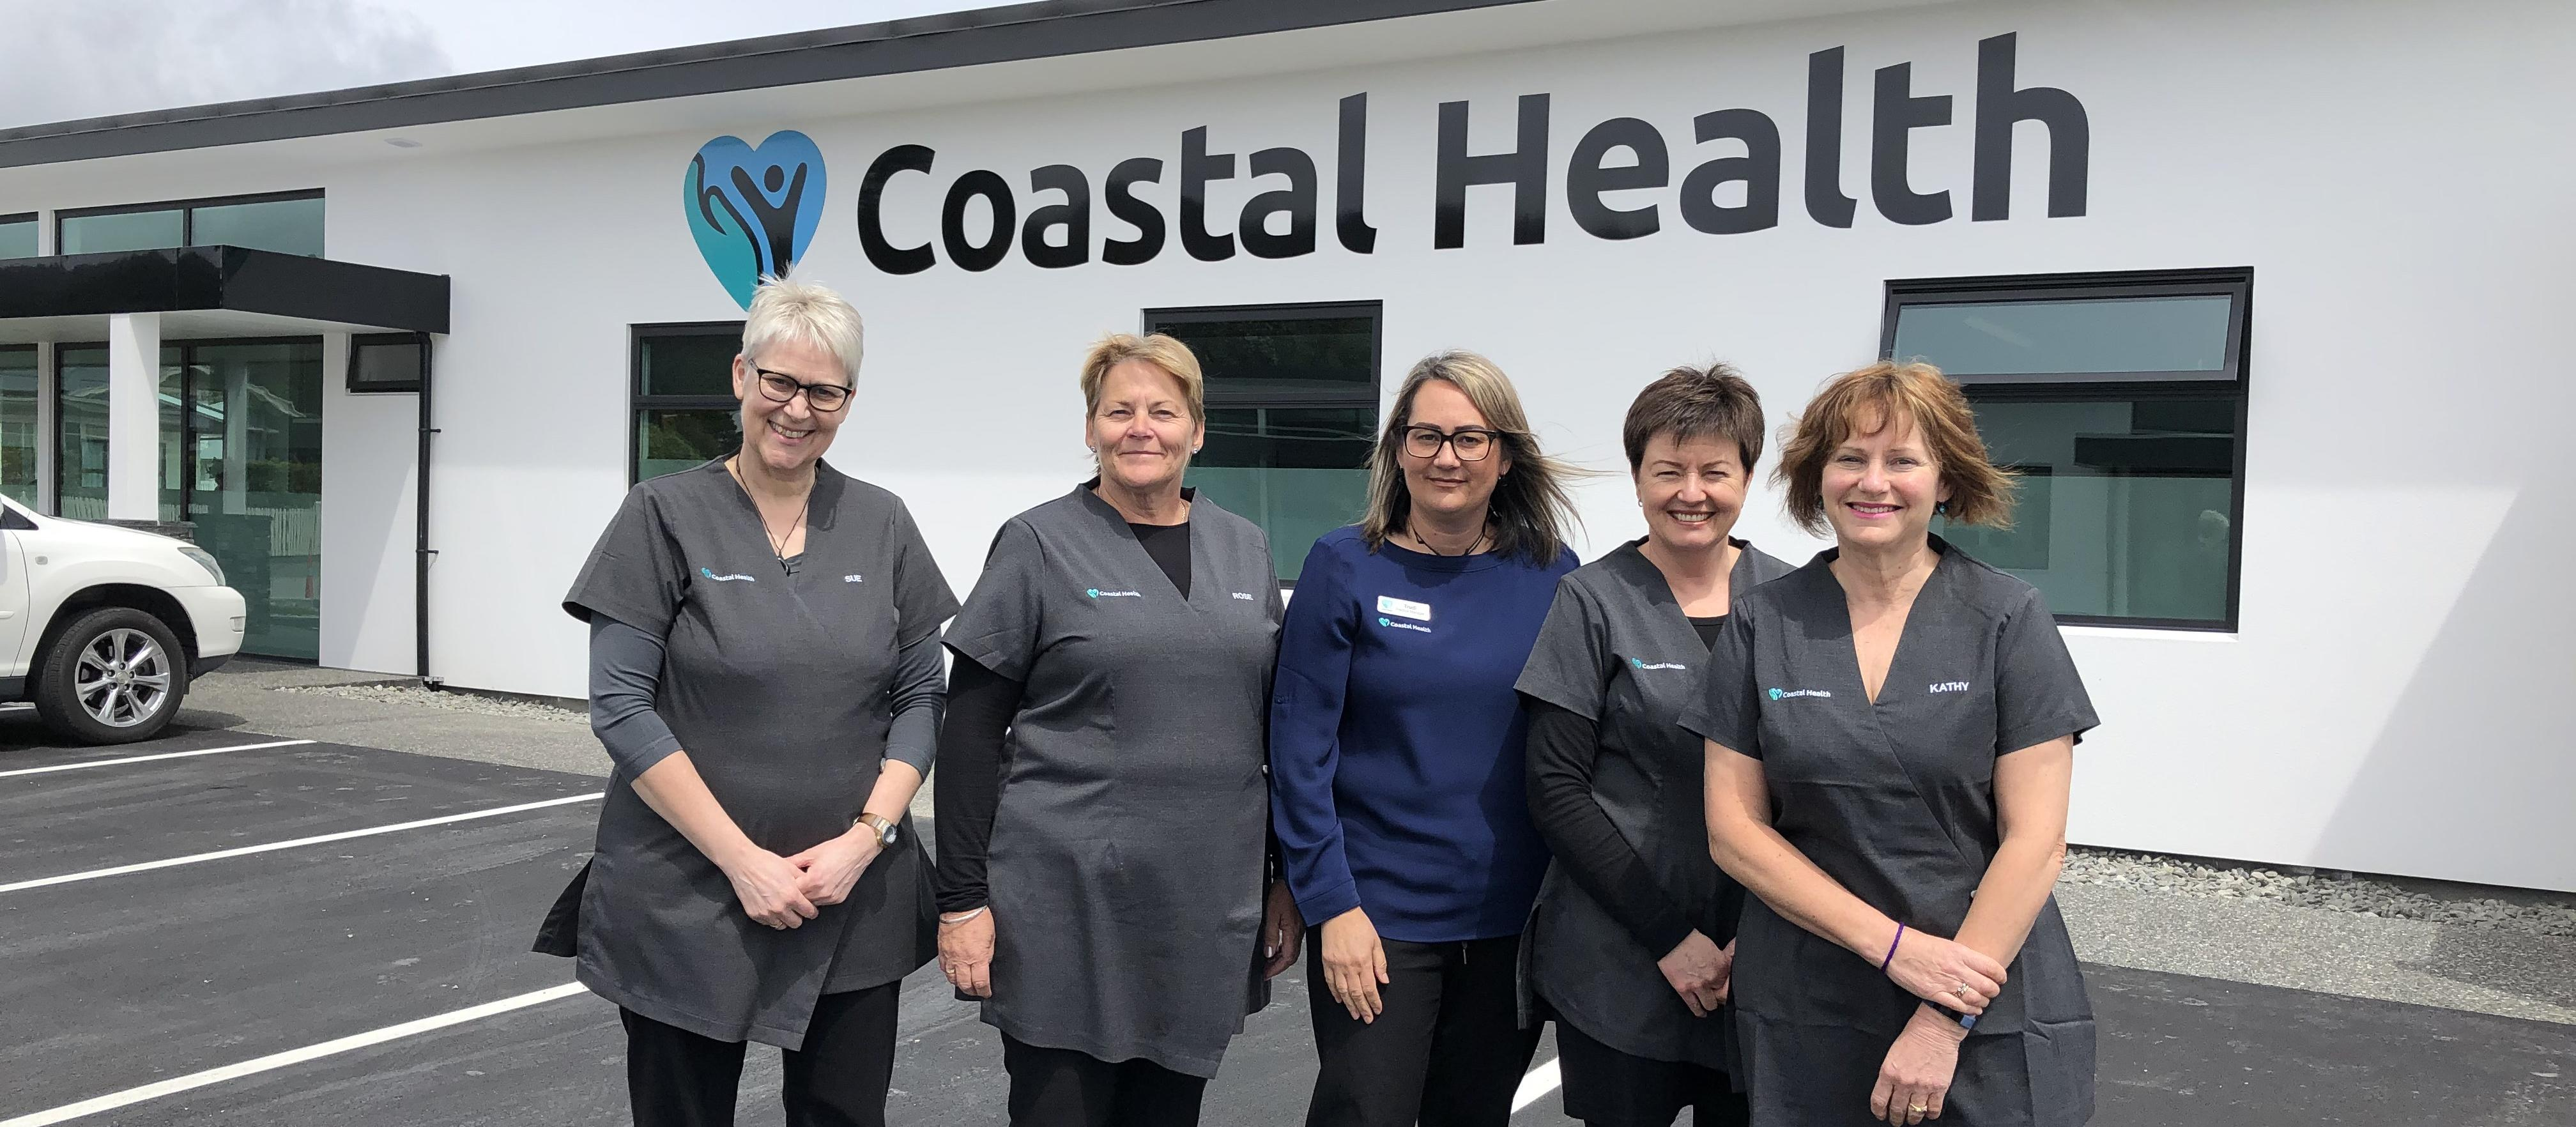 Coastal Health owners from left: Sue Griffin, Rose Ruddle, Trudi McGrath, Michelle Robb and Kathy Hines